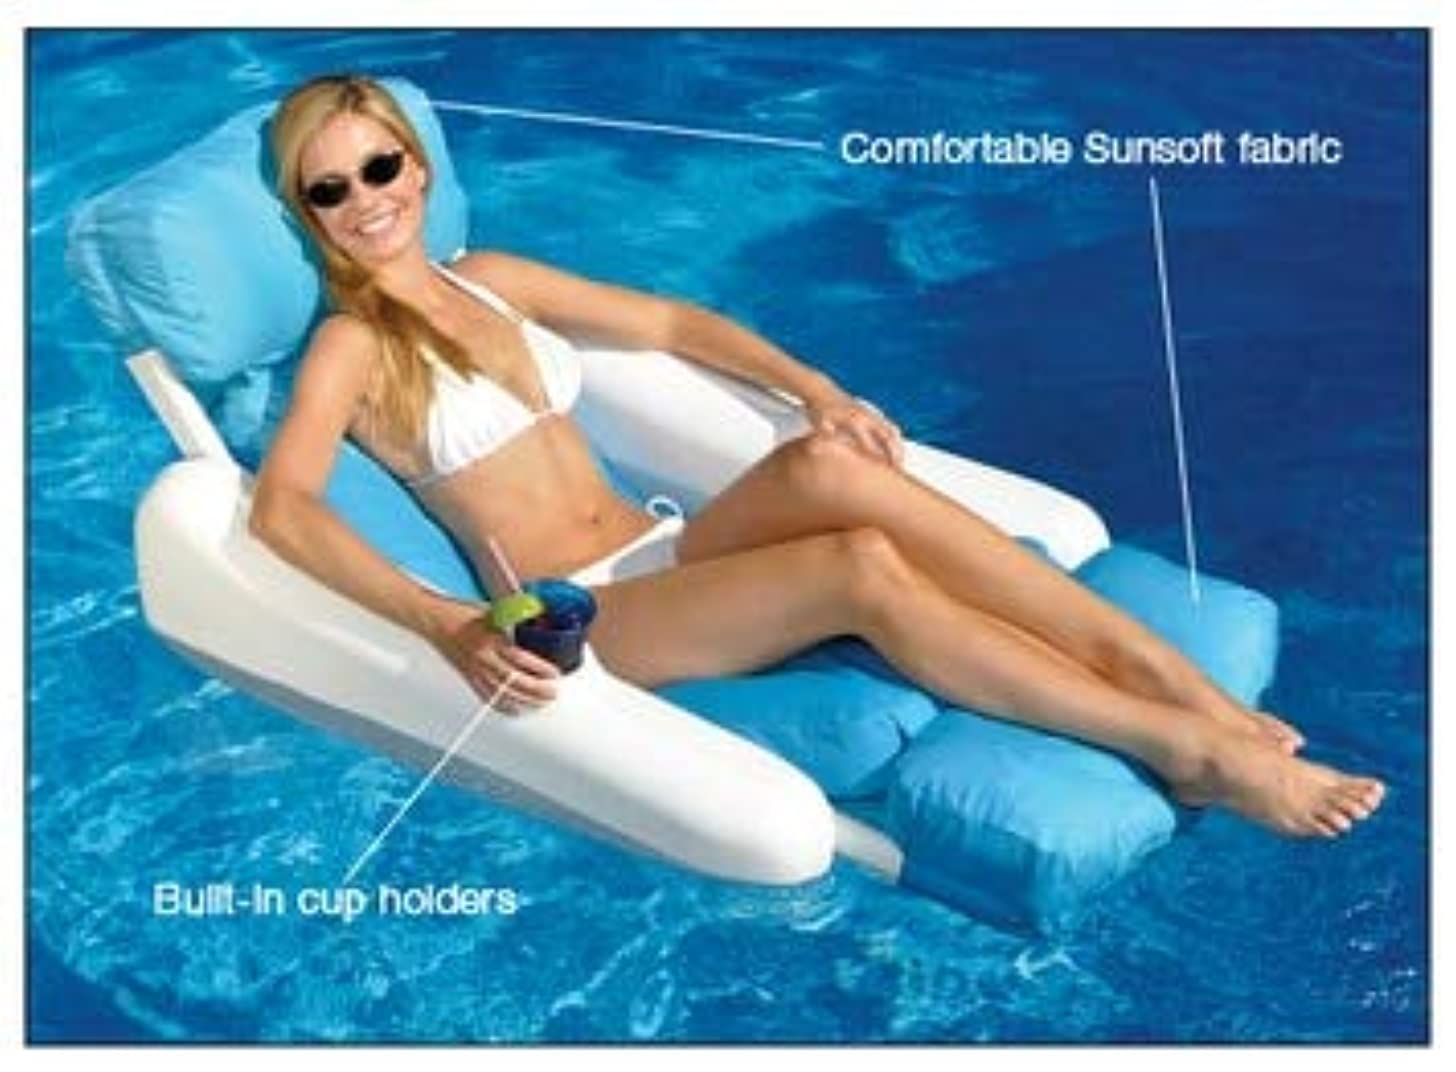 Sunchaser Sunsoft Luxury Lounger for Swimming Pool & Beach